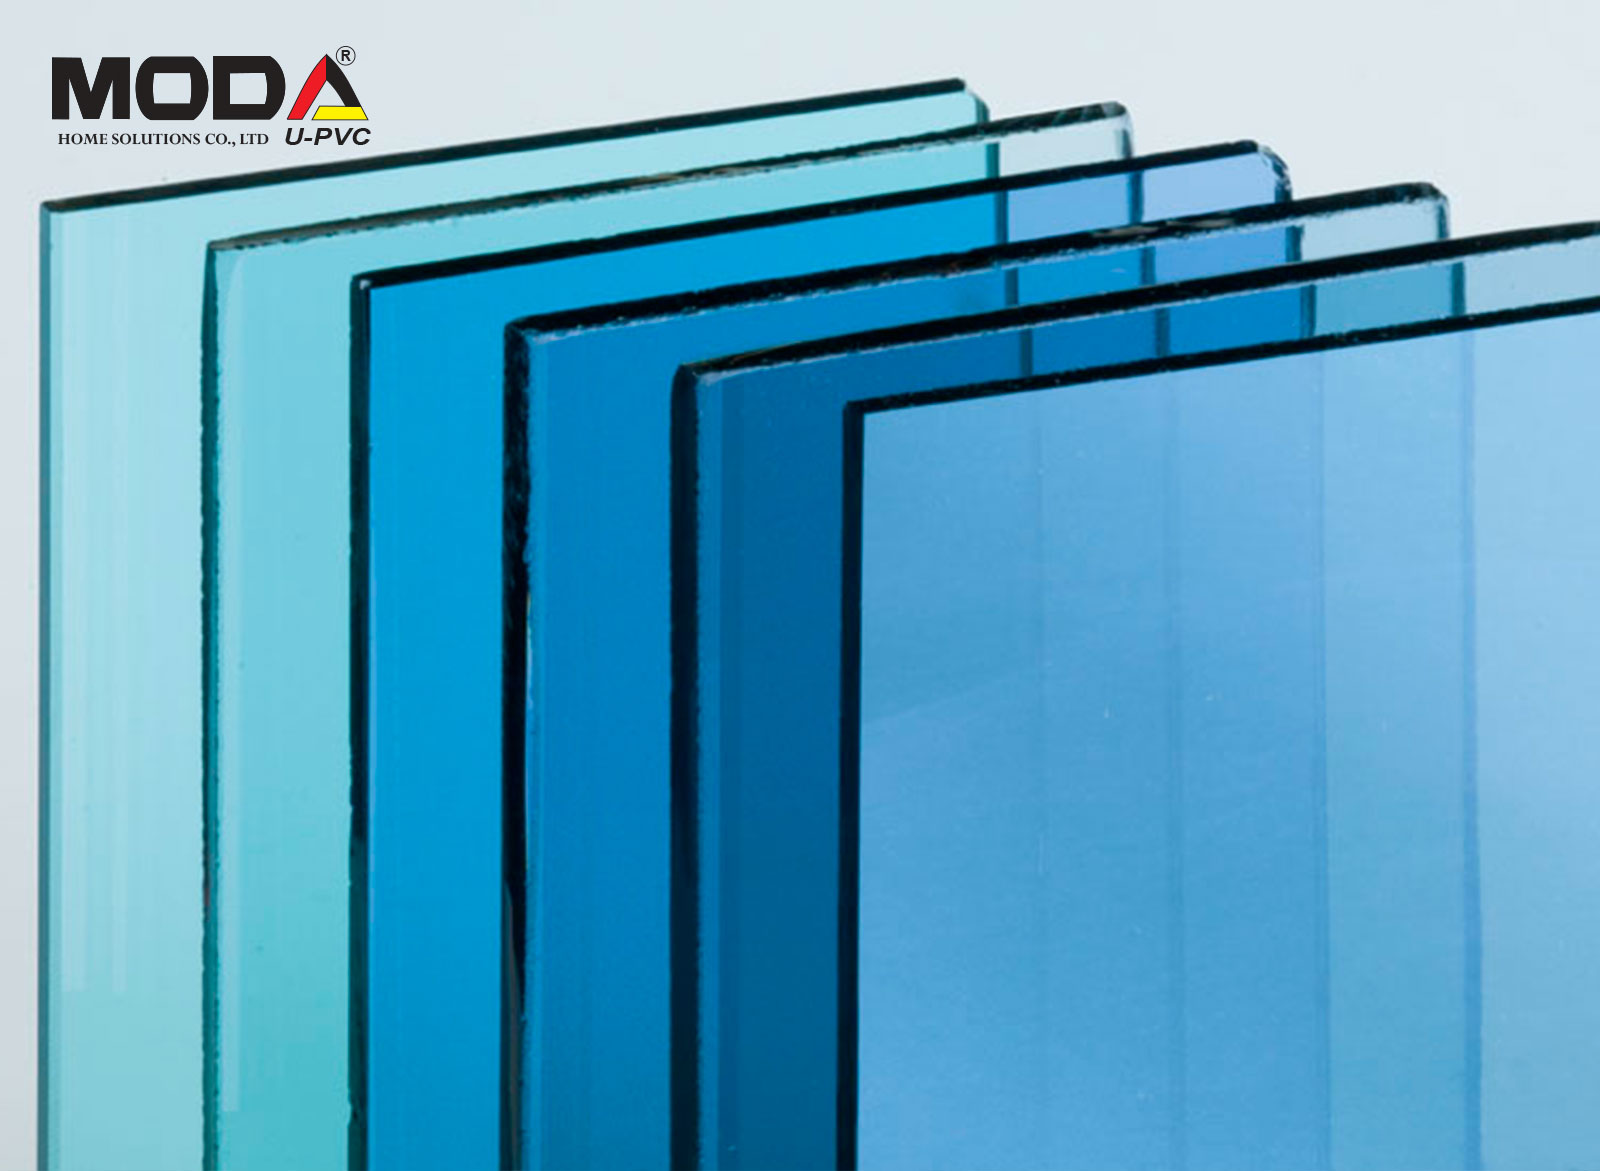 moda thailand float glass system 1